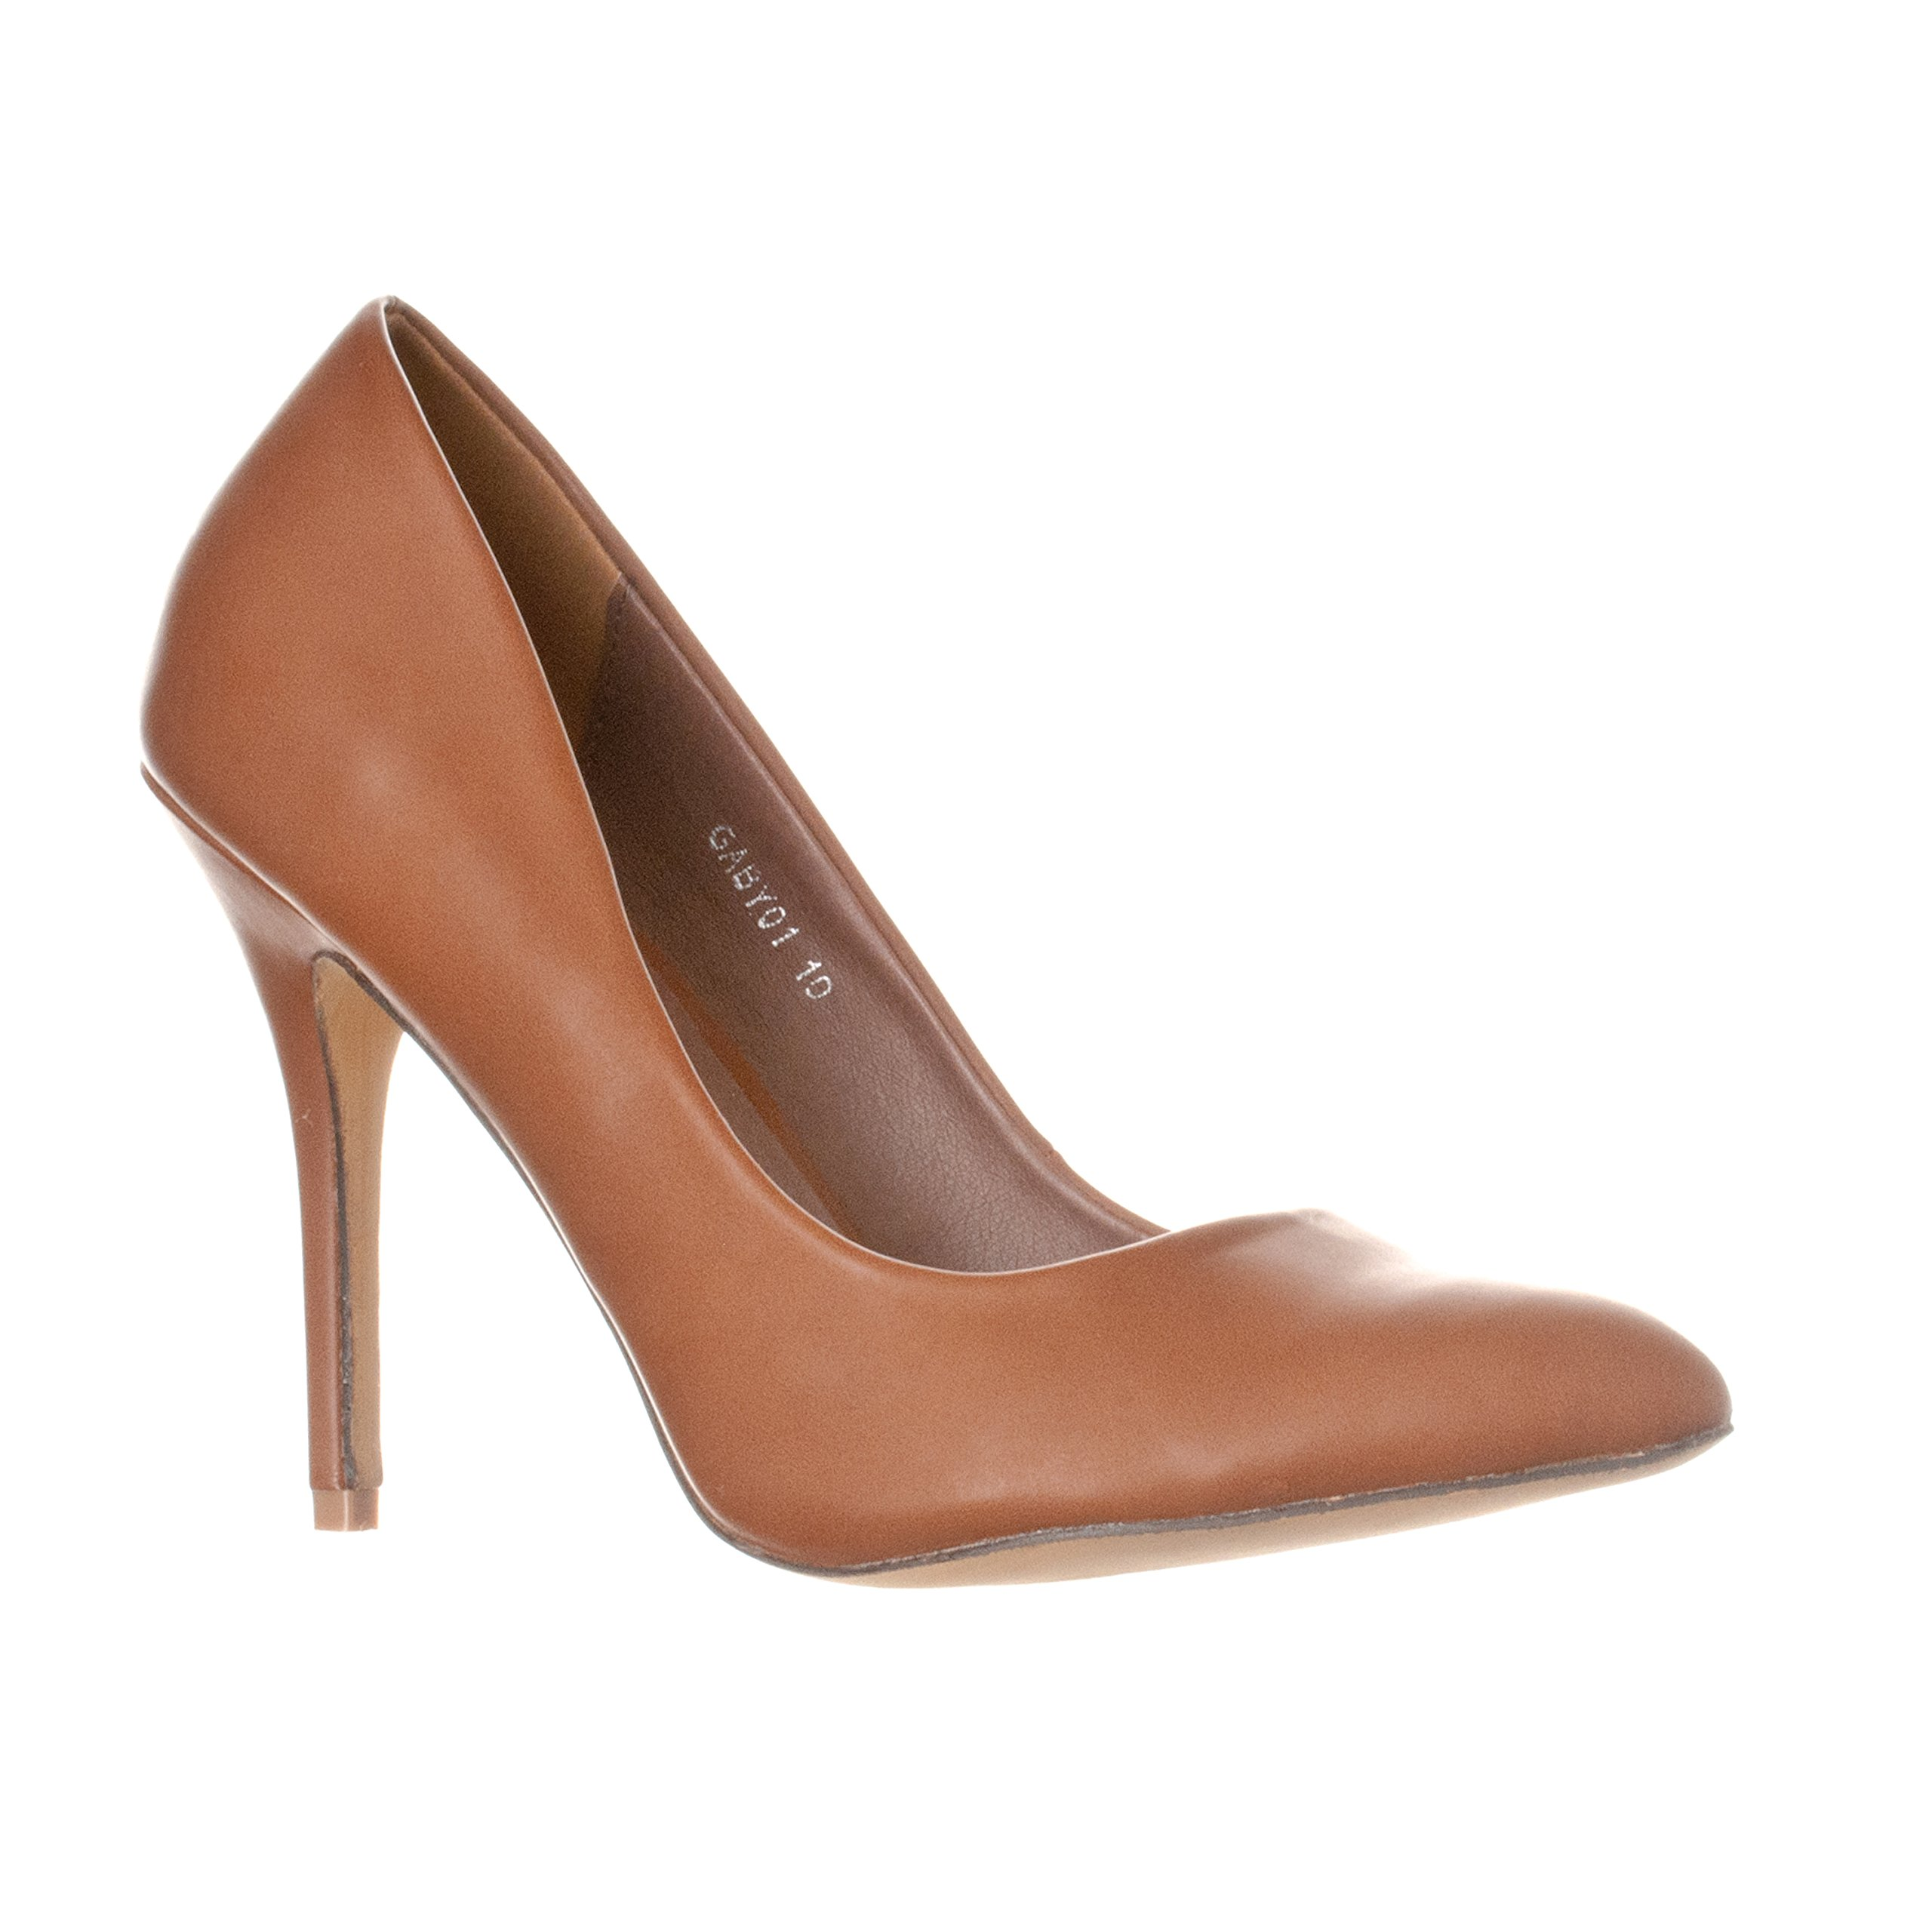 Riverberry Women's Gaby Pointed, Closed Toe Stiletto Pump Heels, Brown PU, 8.5